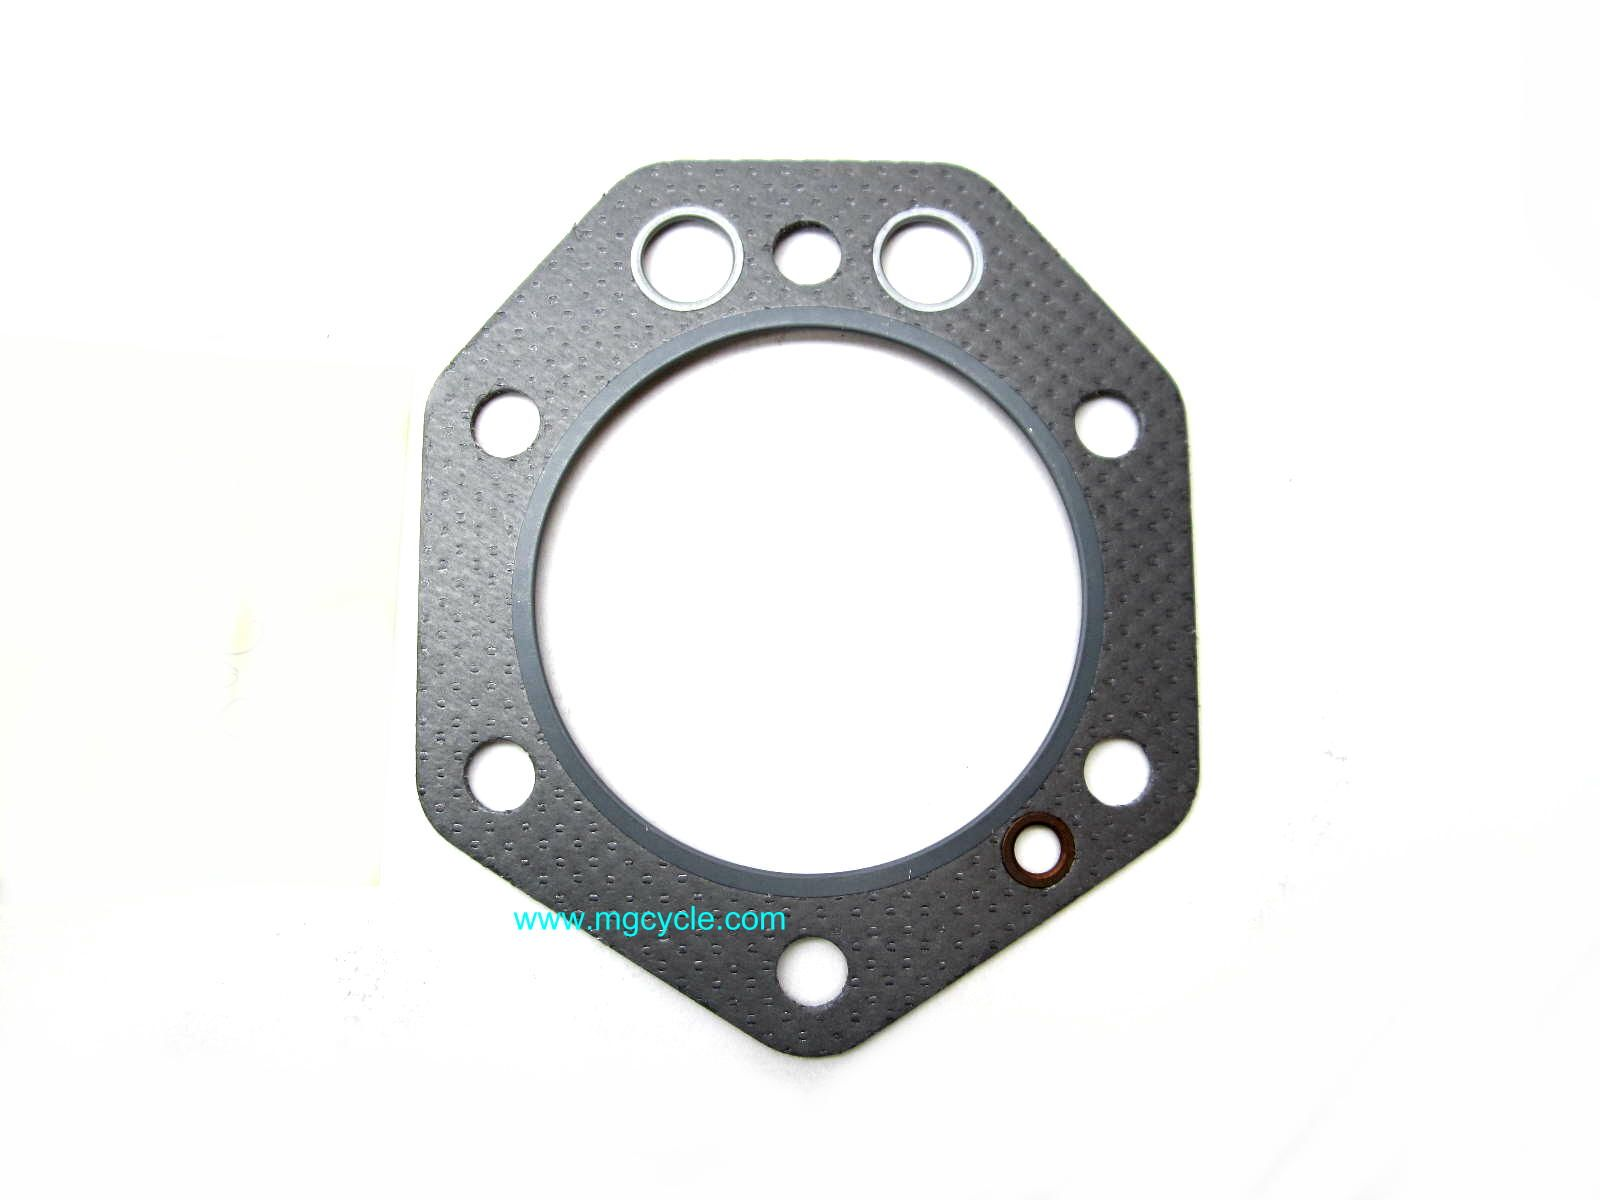 Head gasket for 88mm, Convert G5 SP CX100 GU18022050